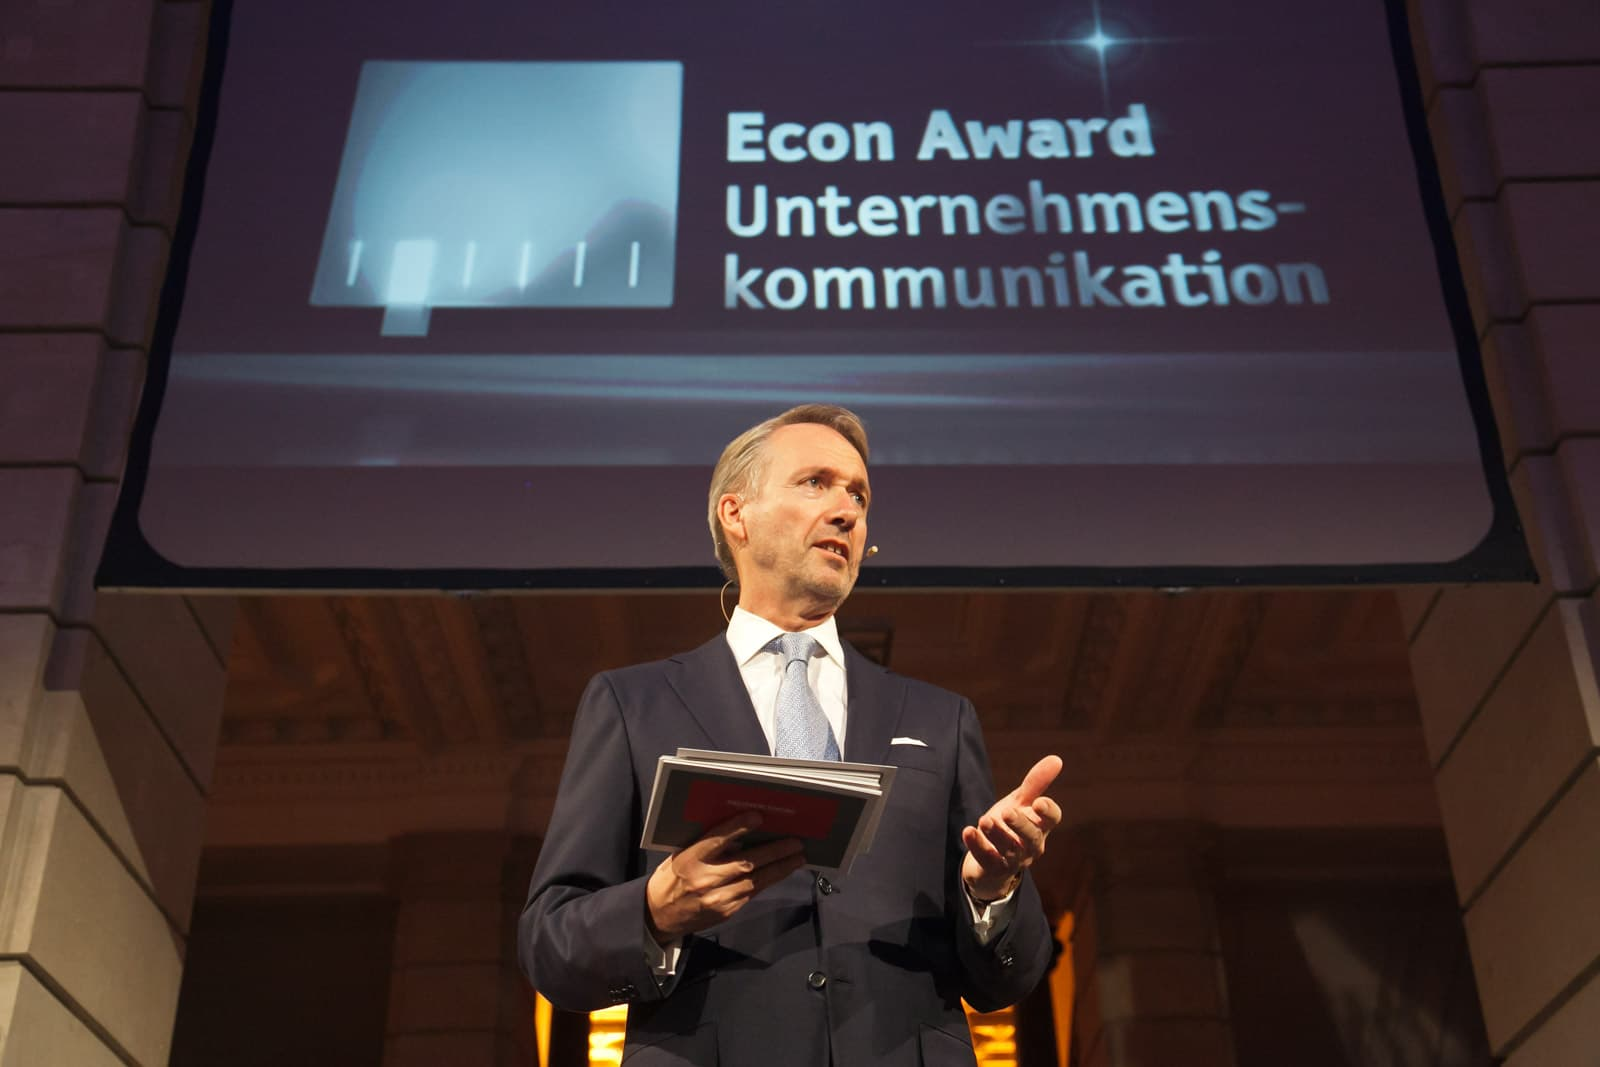 eventfotograf-berlin-econ-award-28.jpg